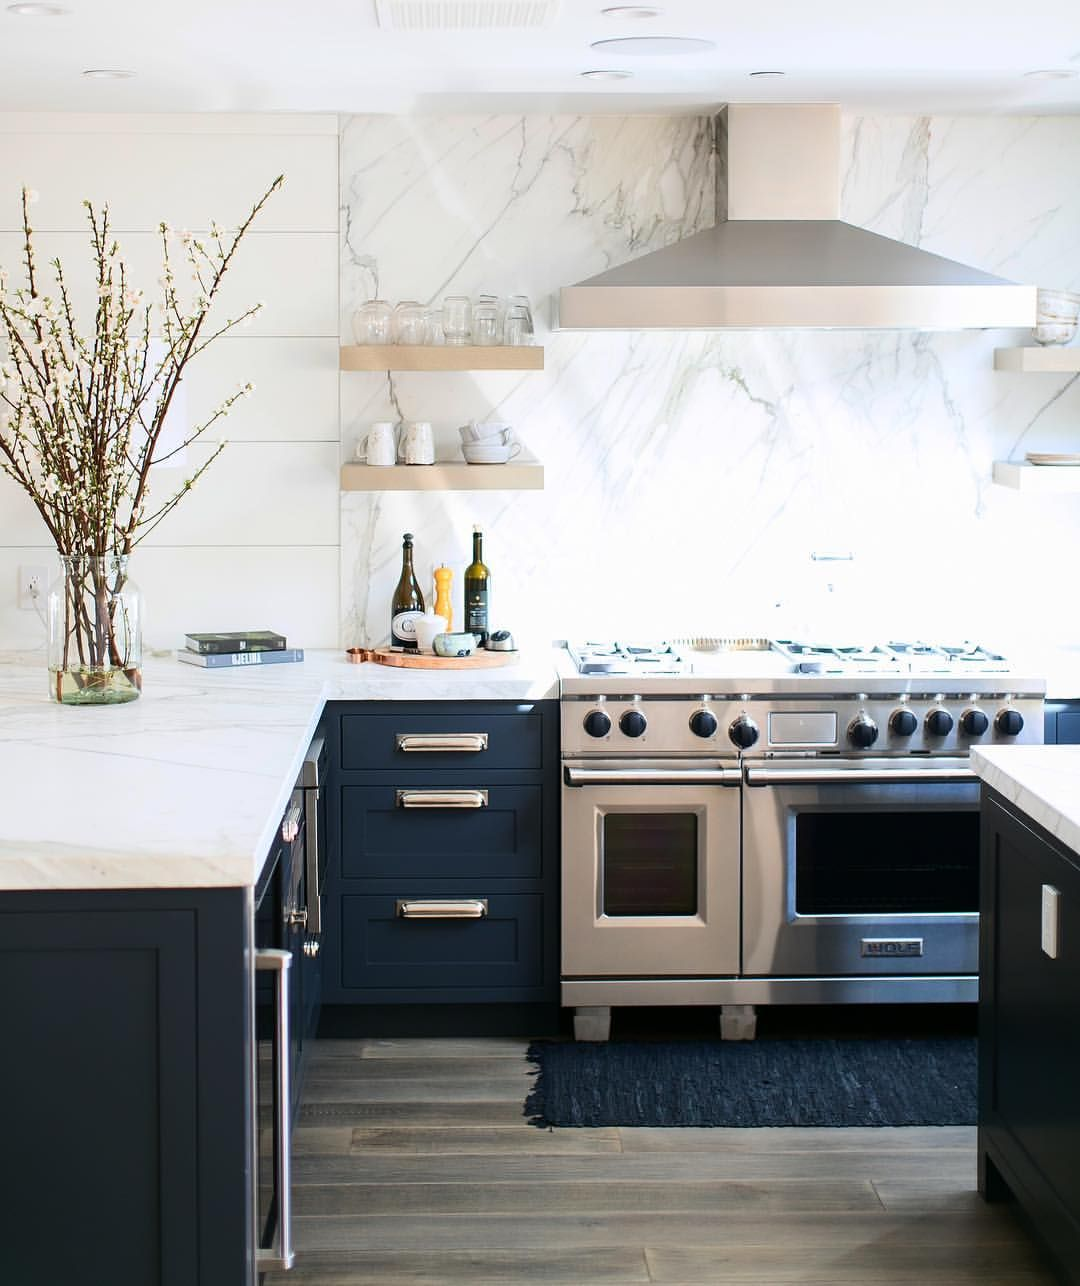 Love The Navy Blue Cabinets Quartz Or Marble Countertop And Backsplash With Wide Shiplap Marble Quartzcounterto Home Kitchens Kitchen Design Kitchen Remodel